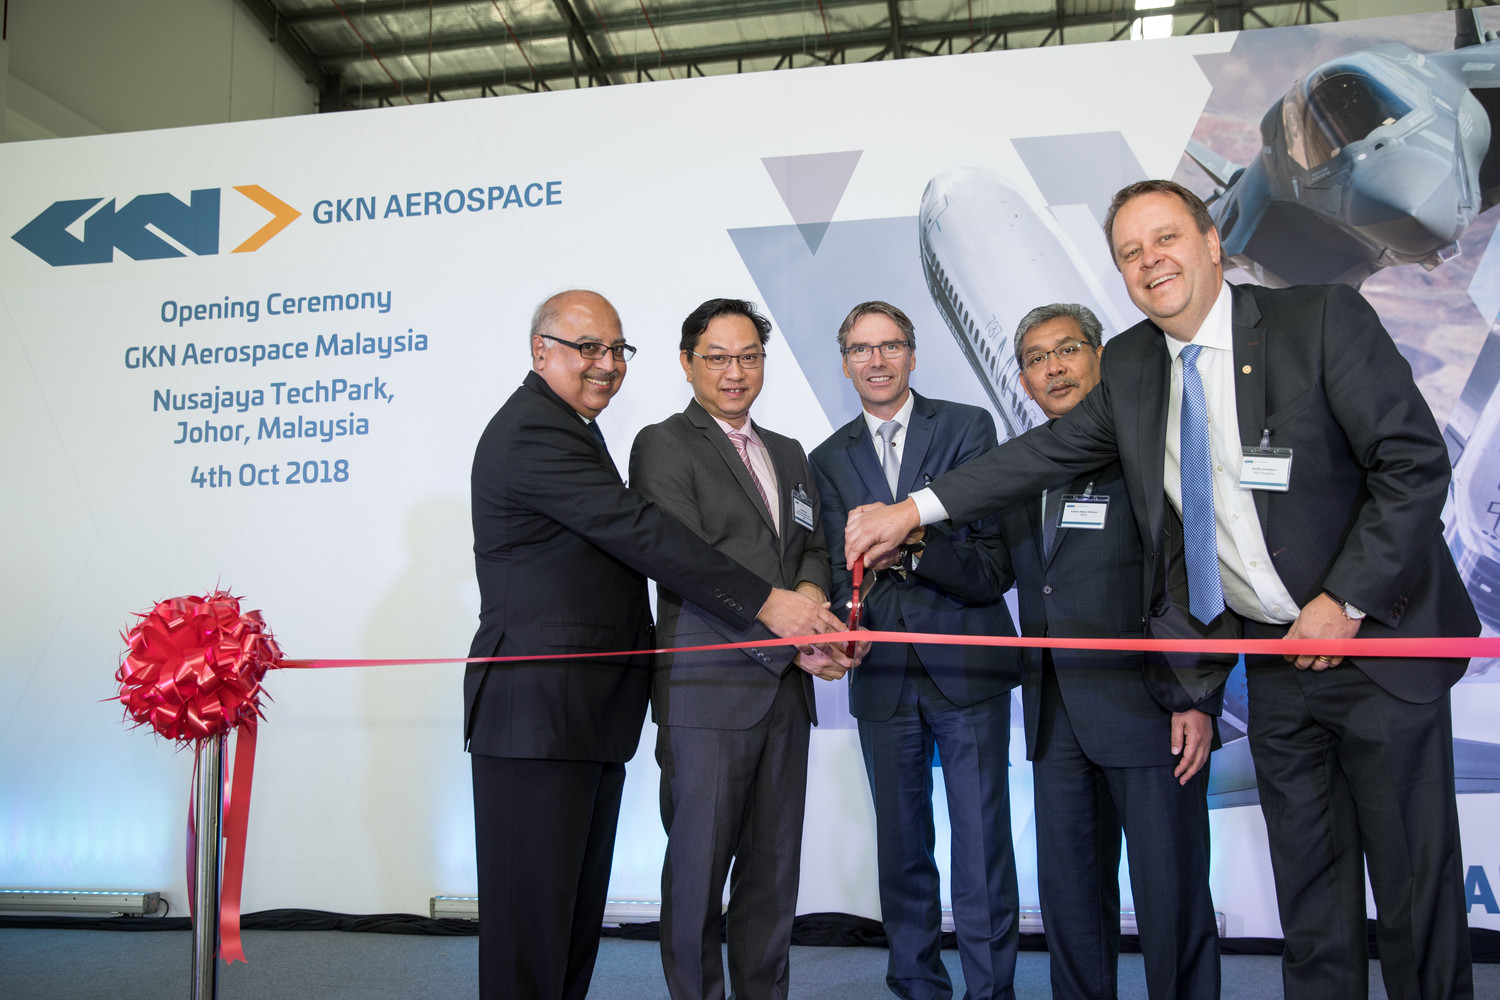 The opening ceremony of the new GKN's repair site. Image via GKN